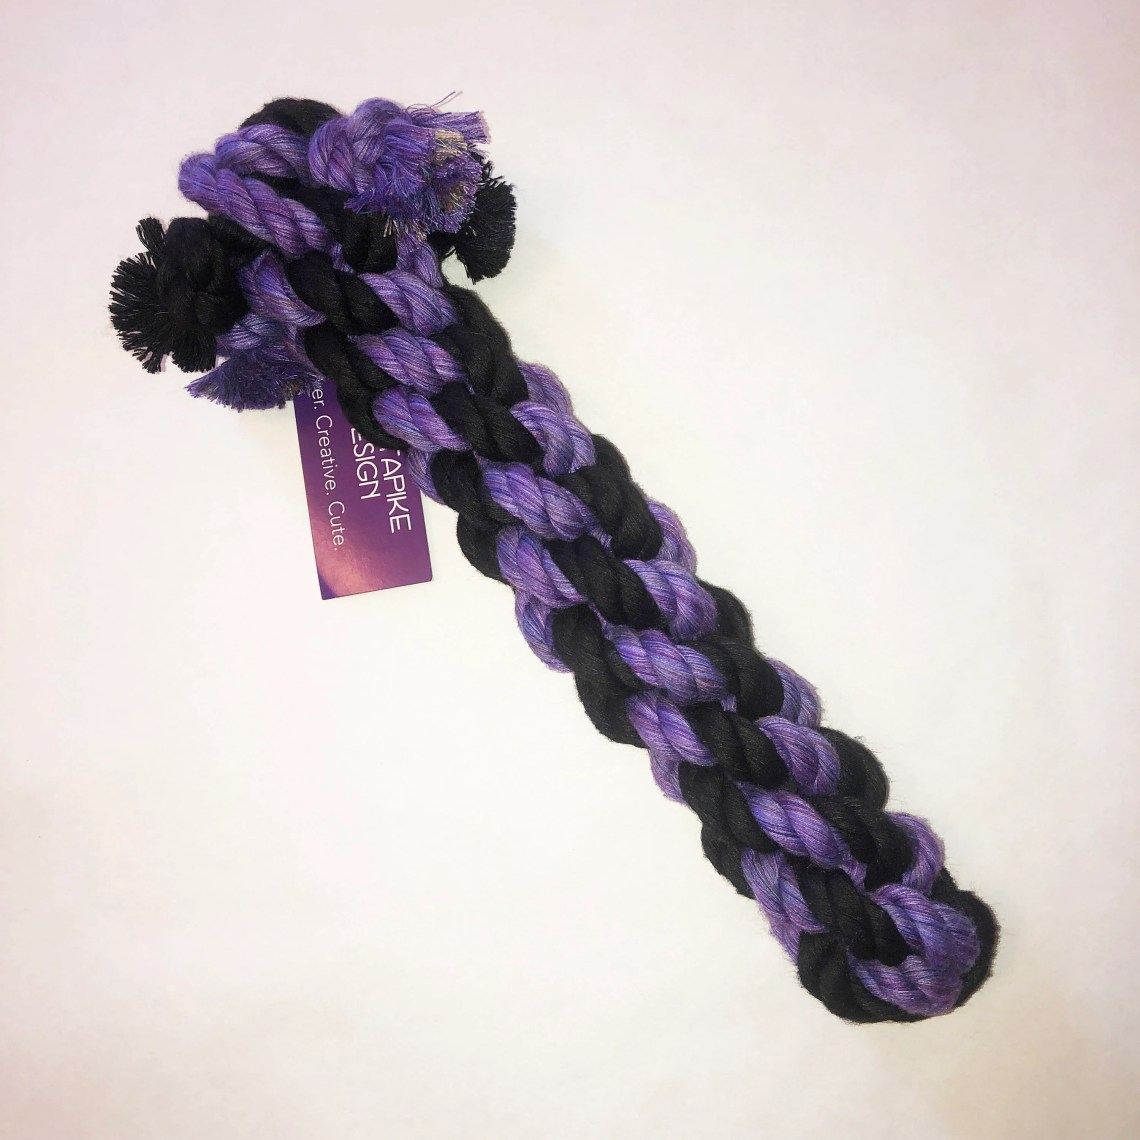 Large Dog Chew and Tug Cotton Rope Toy, Purple and Black